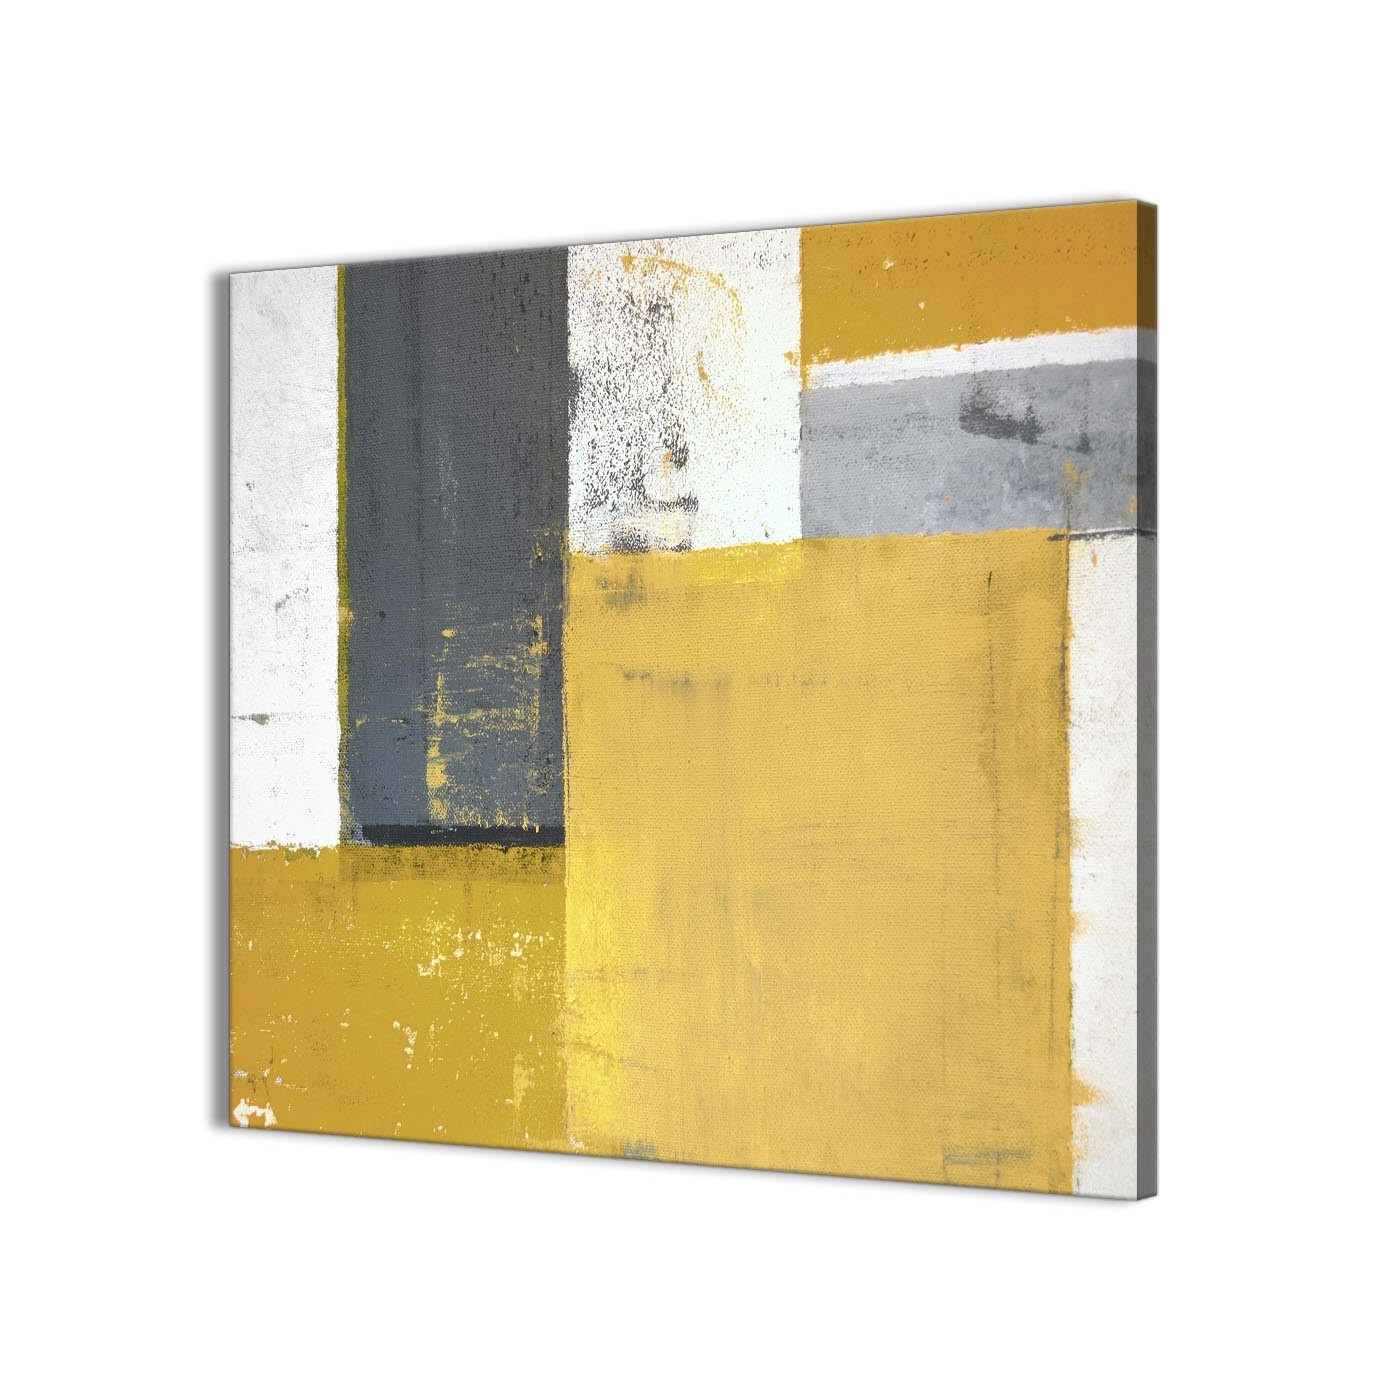 Mustard Yellow Grey Abstract Painting Canvas Wall Art Print – Modern With Regard To Well Liked Modern Painting Canvas Wall Art (View 12 of 15)